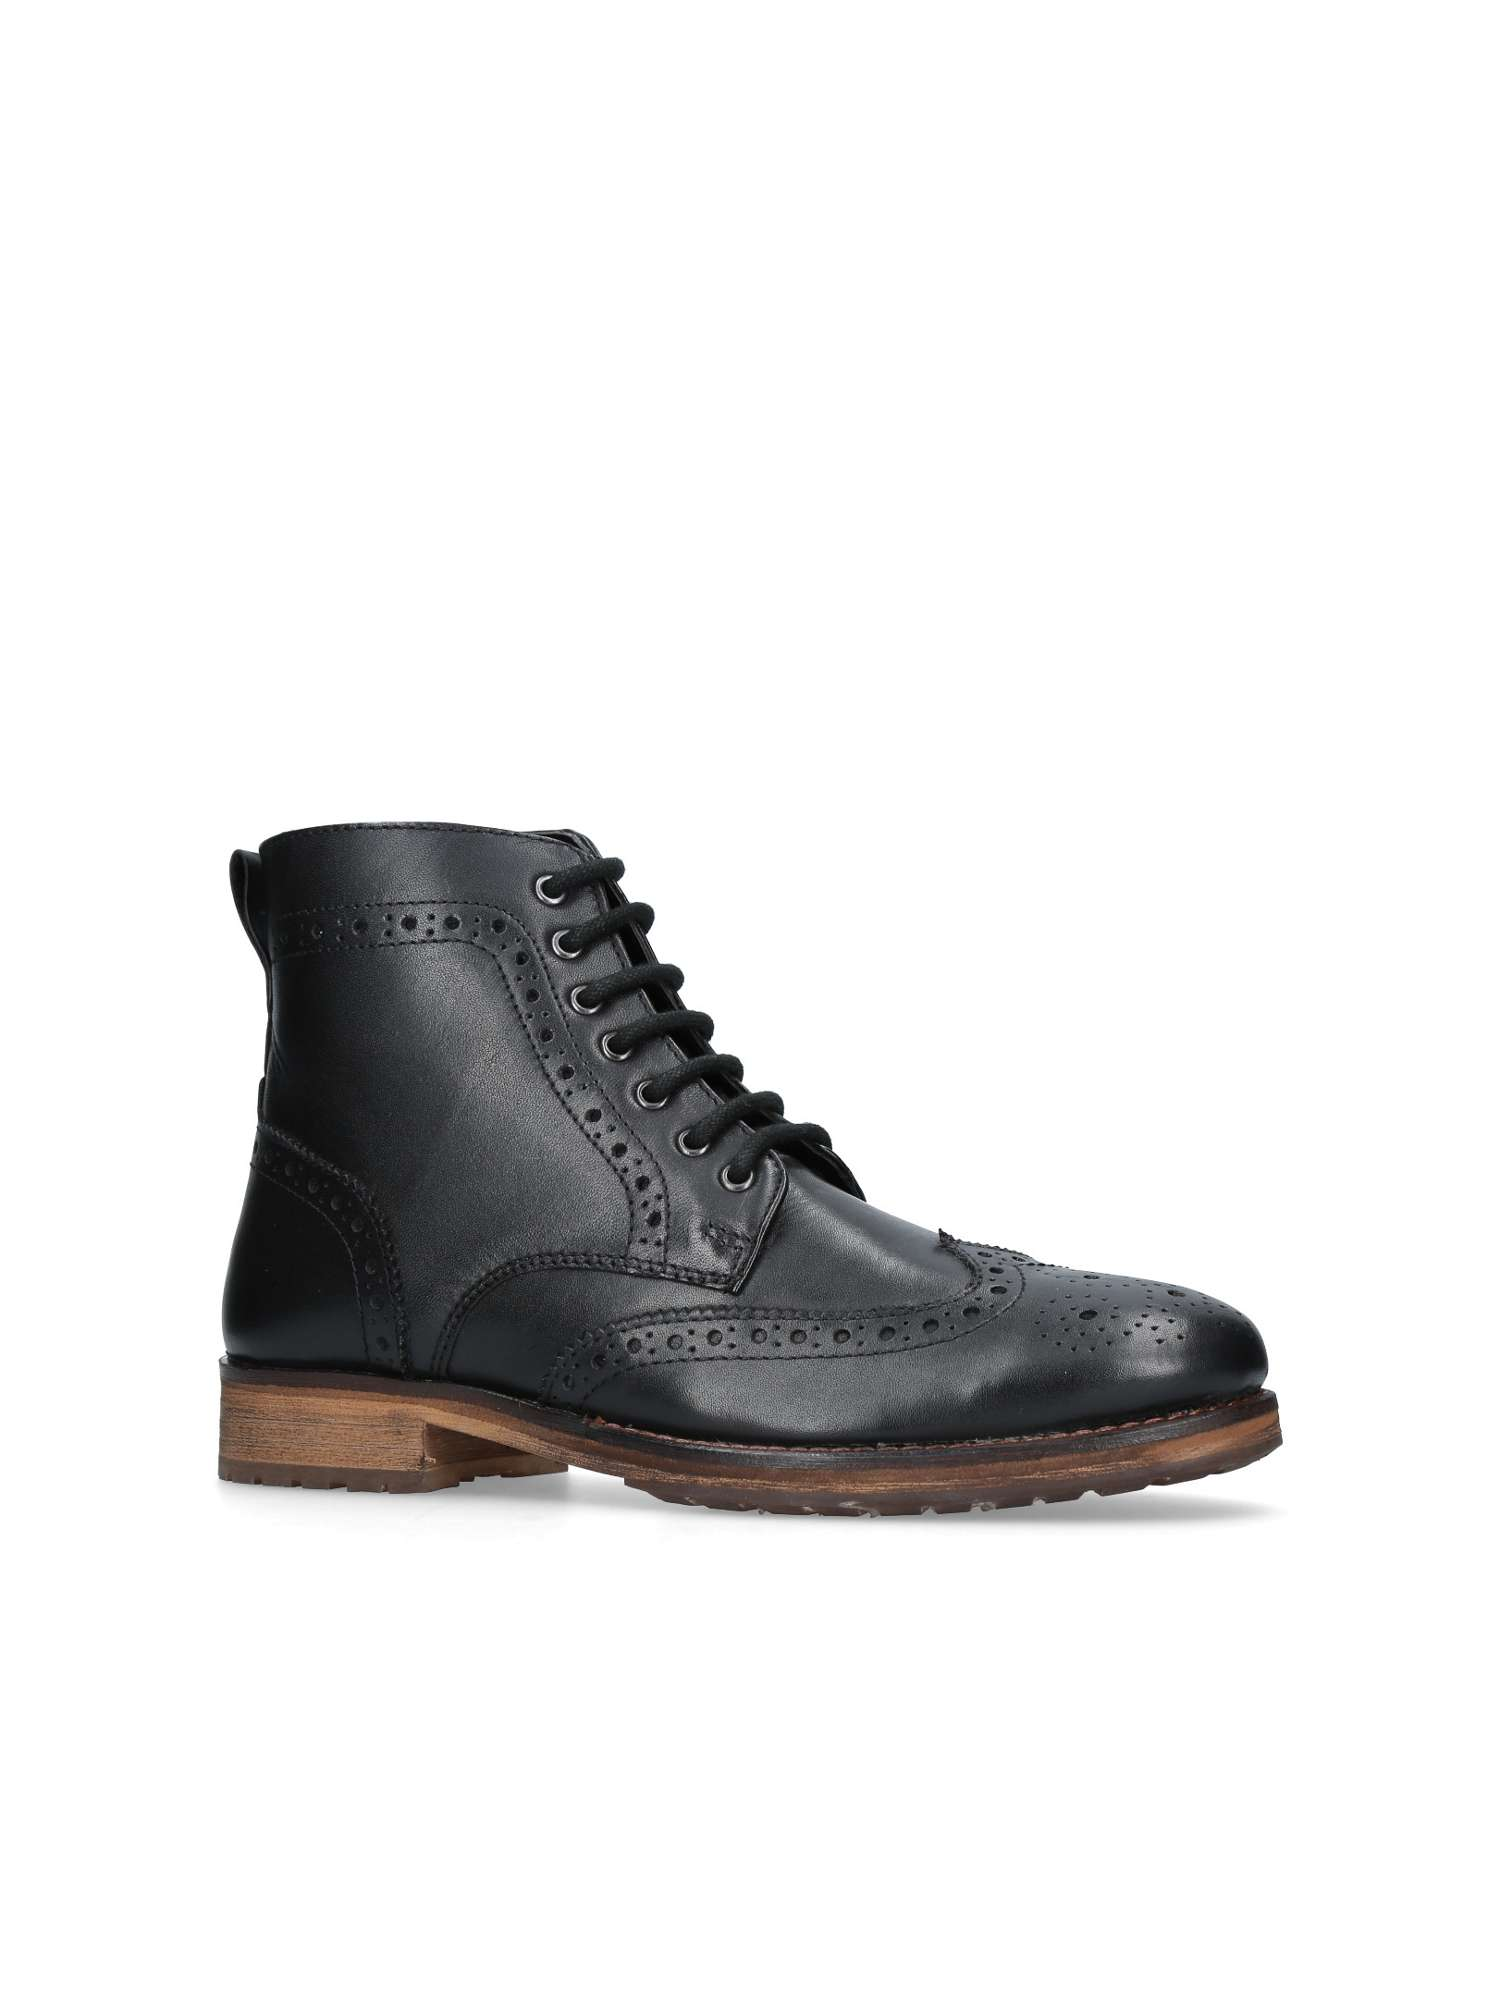 Black Brogue Boots